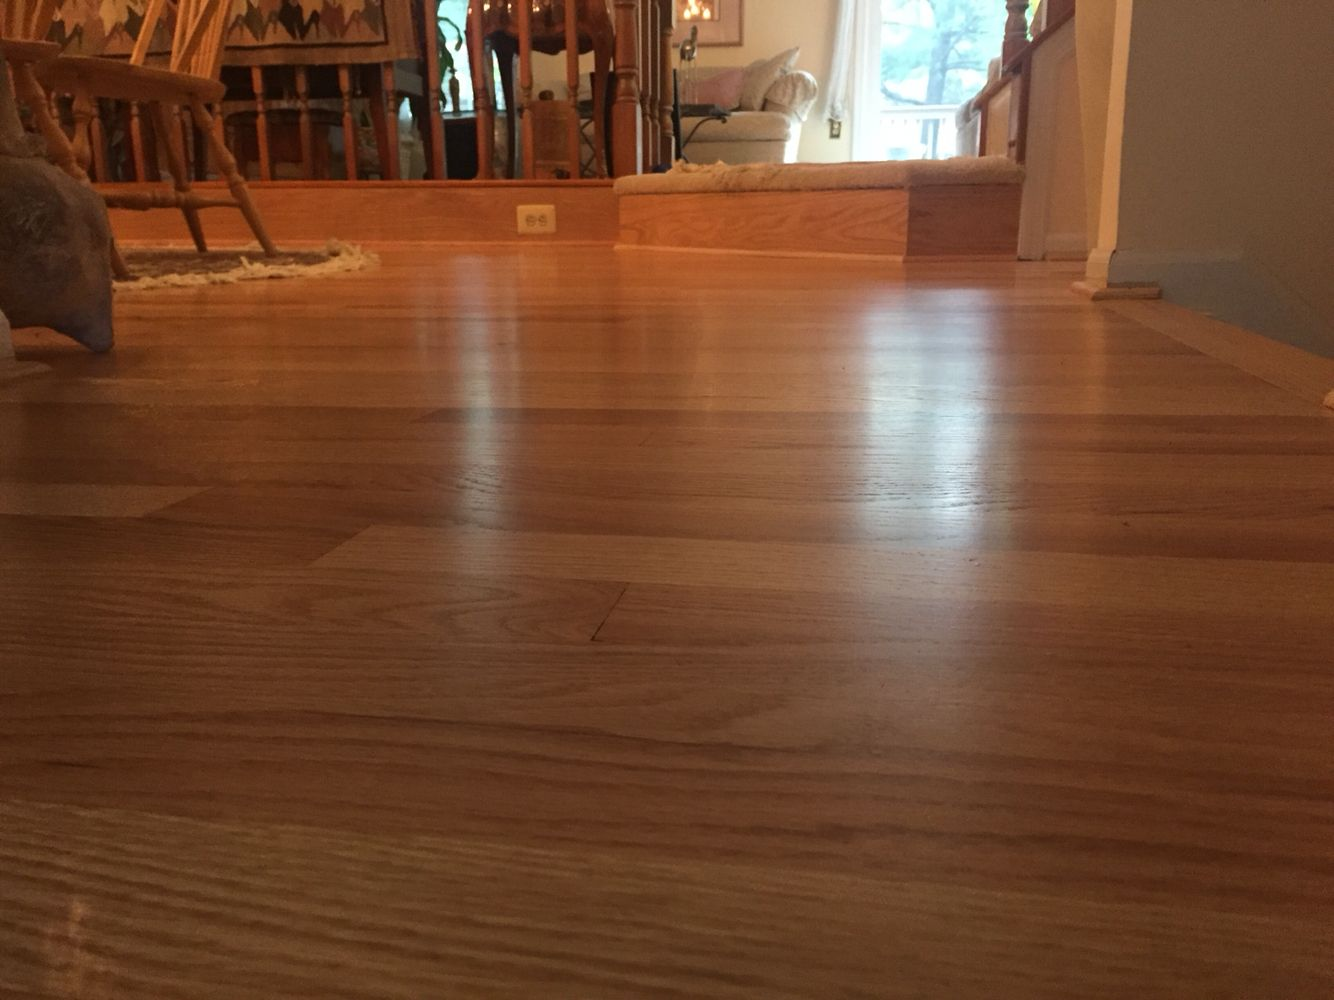 Refinishes red oak flooring with natural Pallmann X color